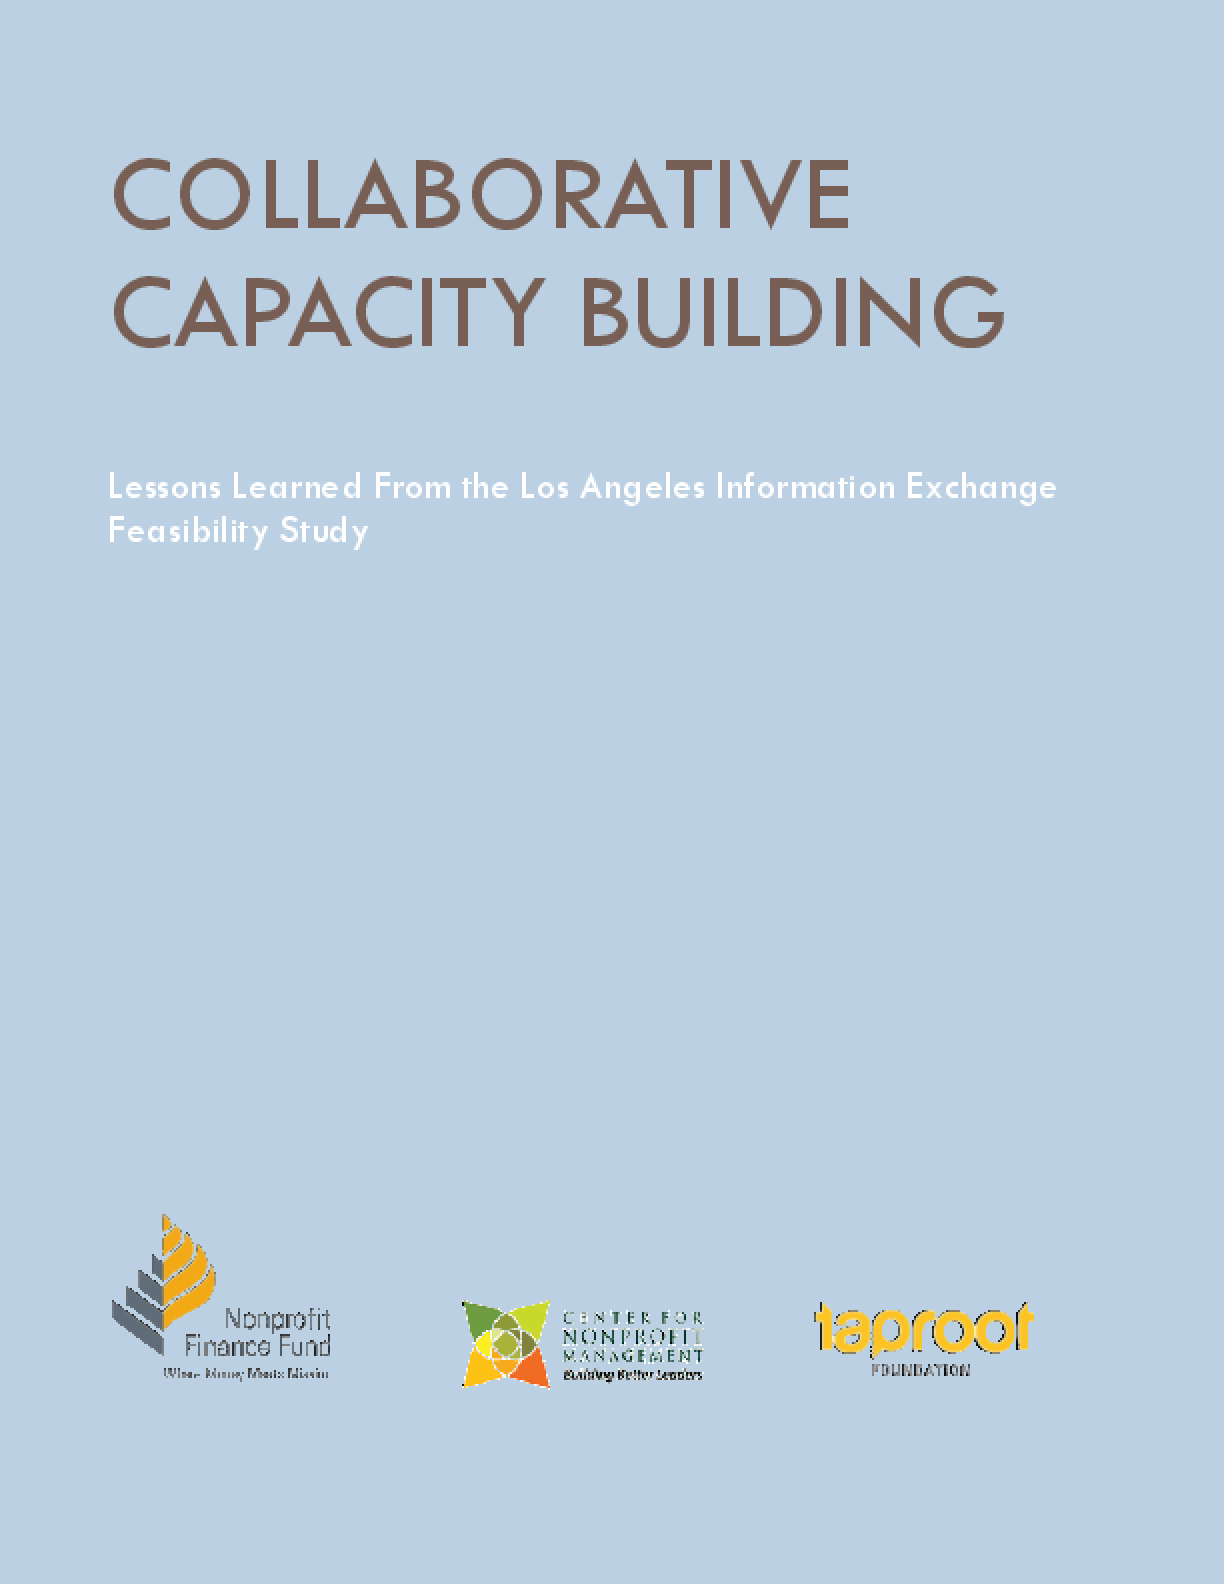 Collaborative Capacity Building: Lessons Learned From the Los Angeles Information Exchange Feasibility Study